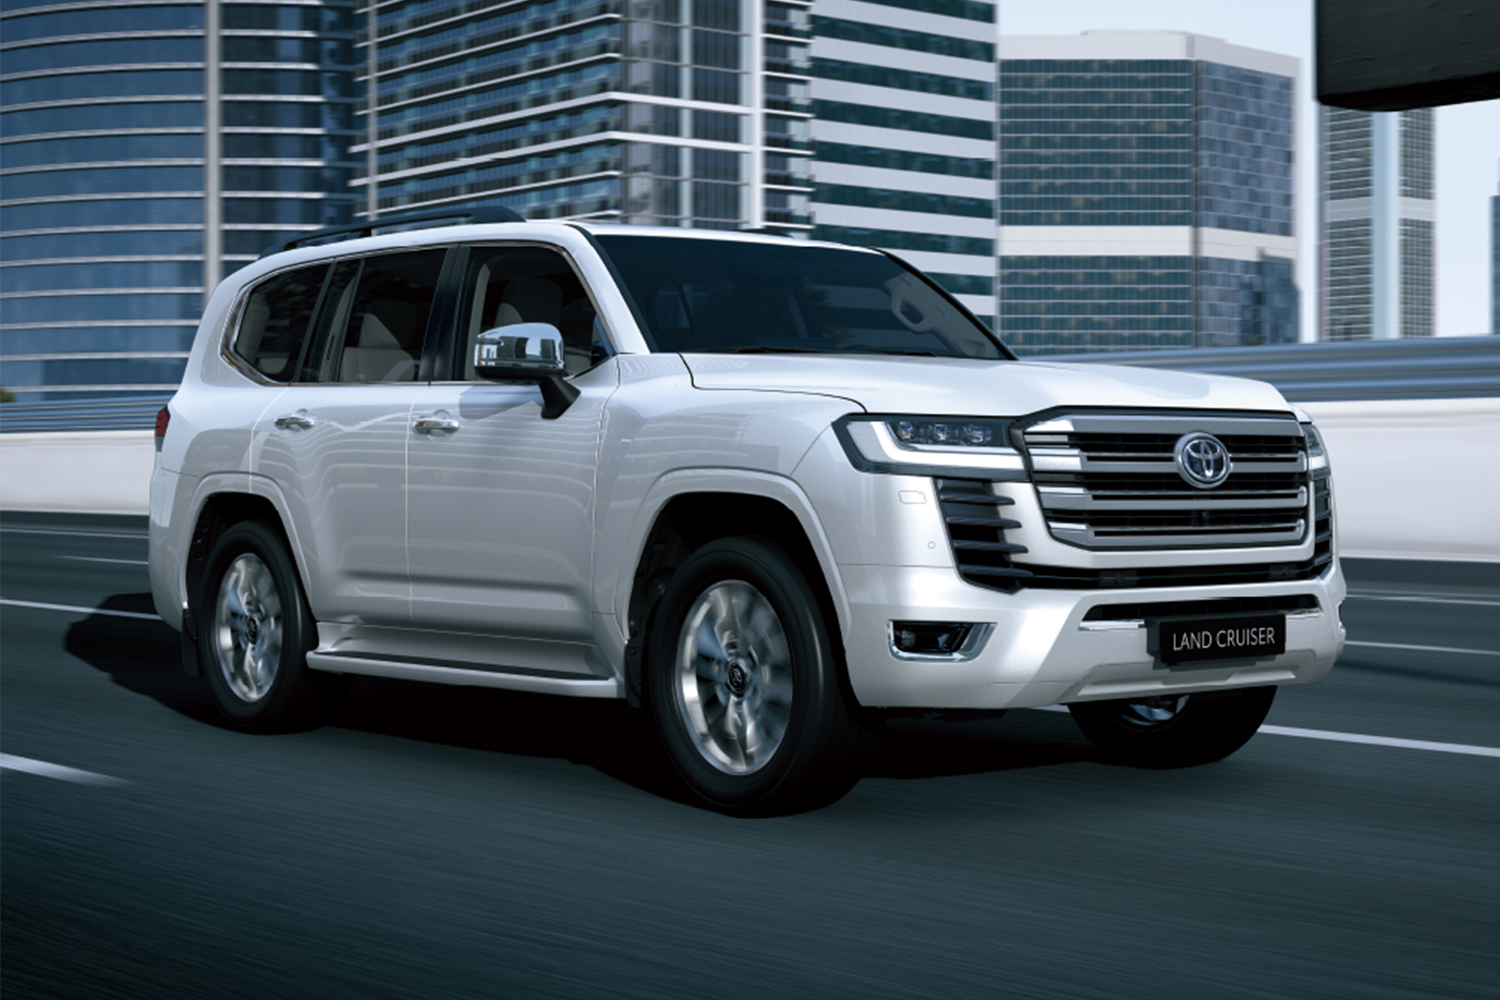 The 2022 Toyota Land Cruiser SUV in white driving down a road in the city